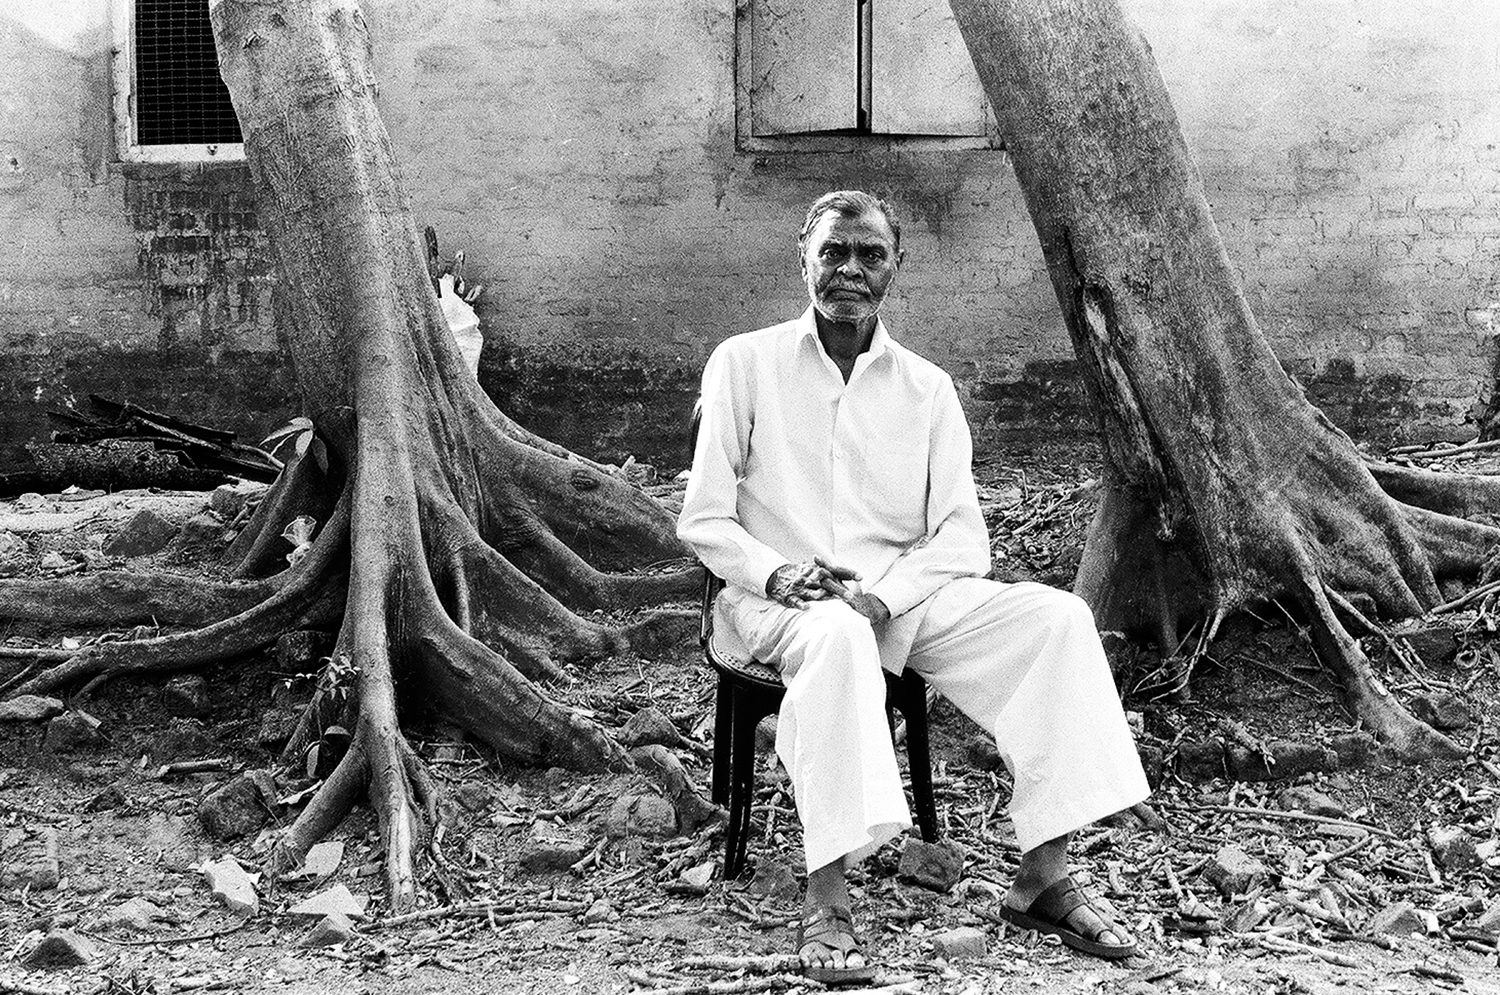 1. Potrait of Tukaramji in front of his house as he takes out some time to rest between his work | 02900014.jpg